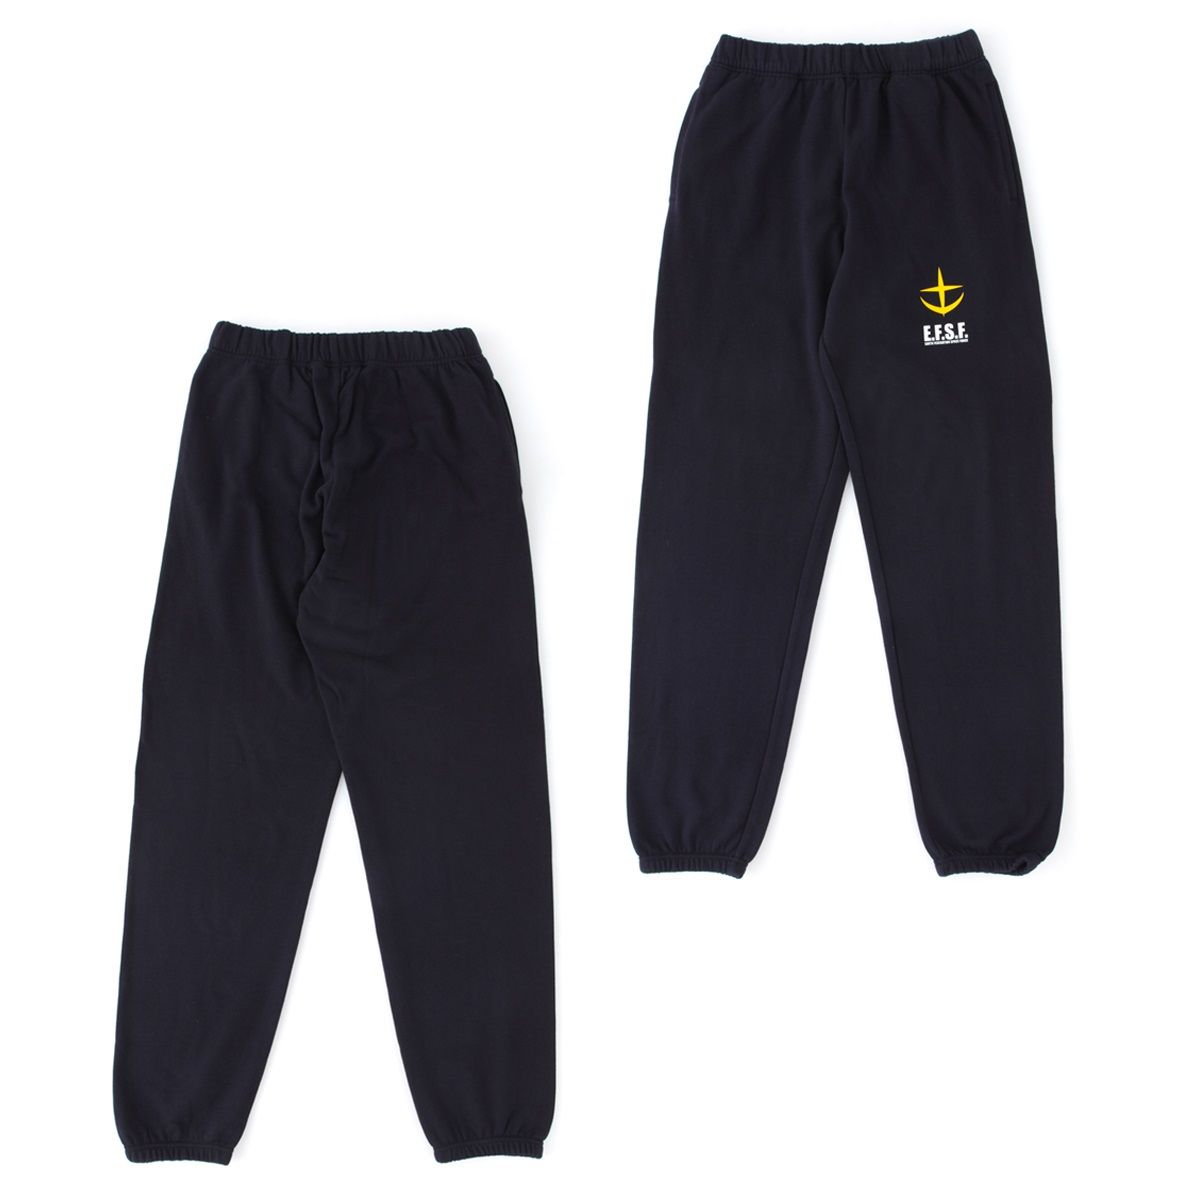 Mobile Suit Gundam Earth Federation Space Force Workout Pants